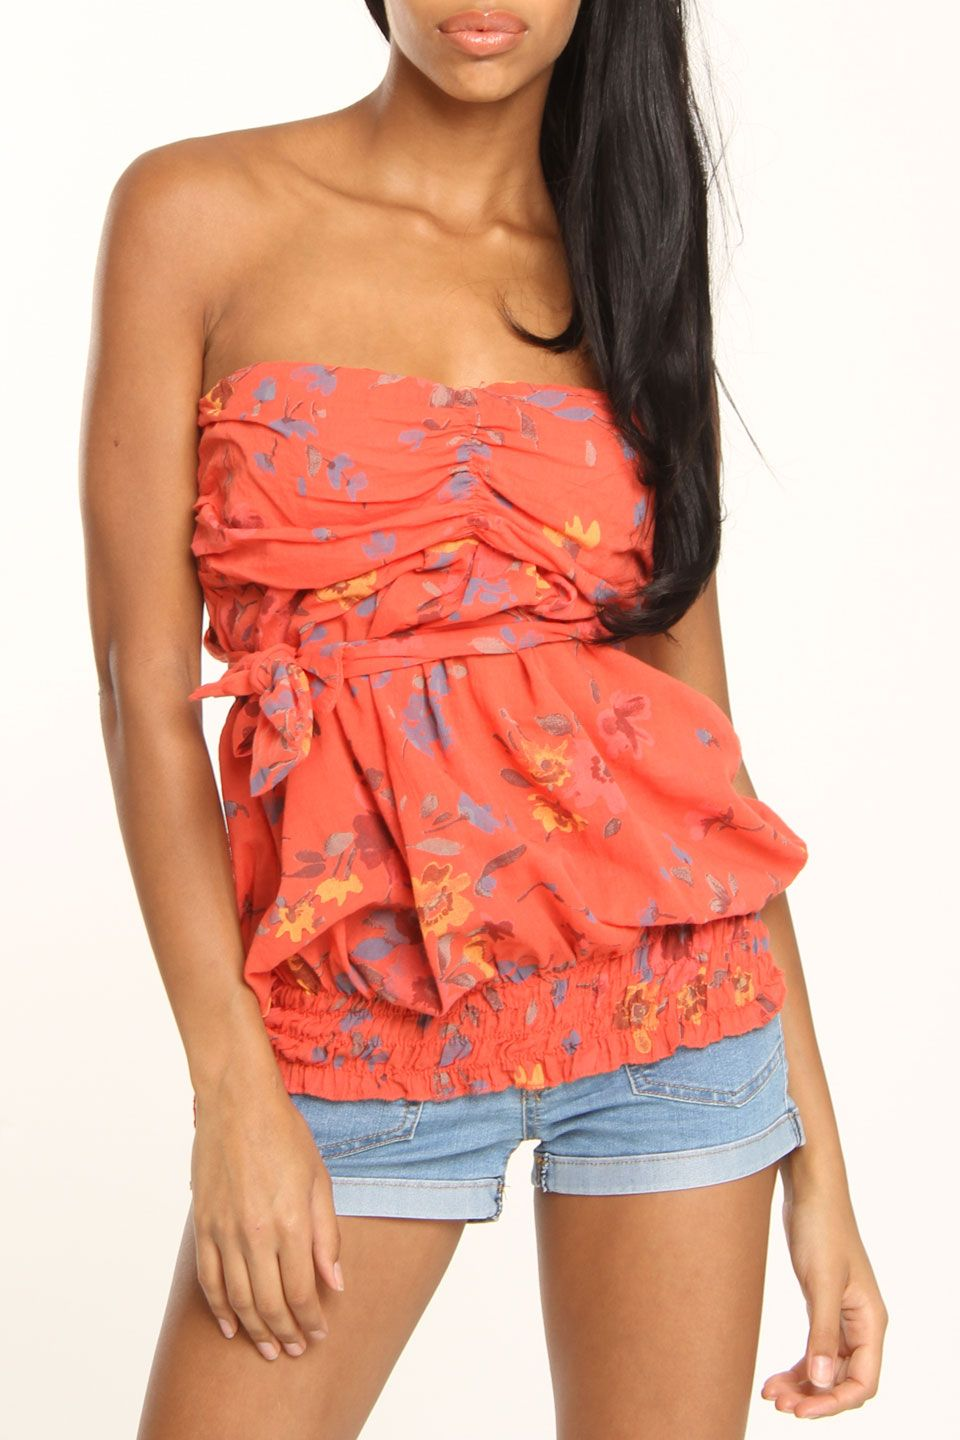 Lola Linda Strapless Top In Coral Multicolor - Beyond the Rack